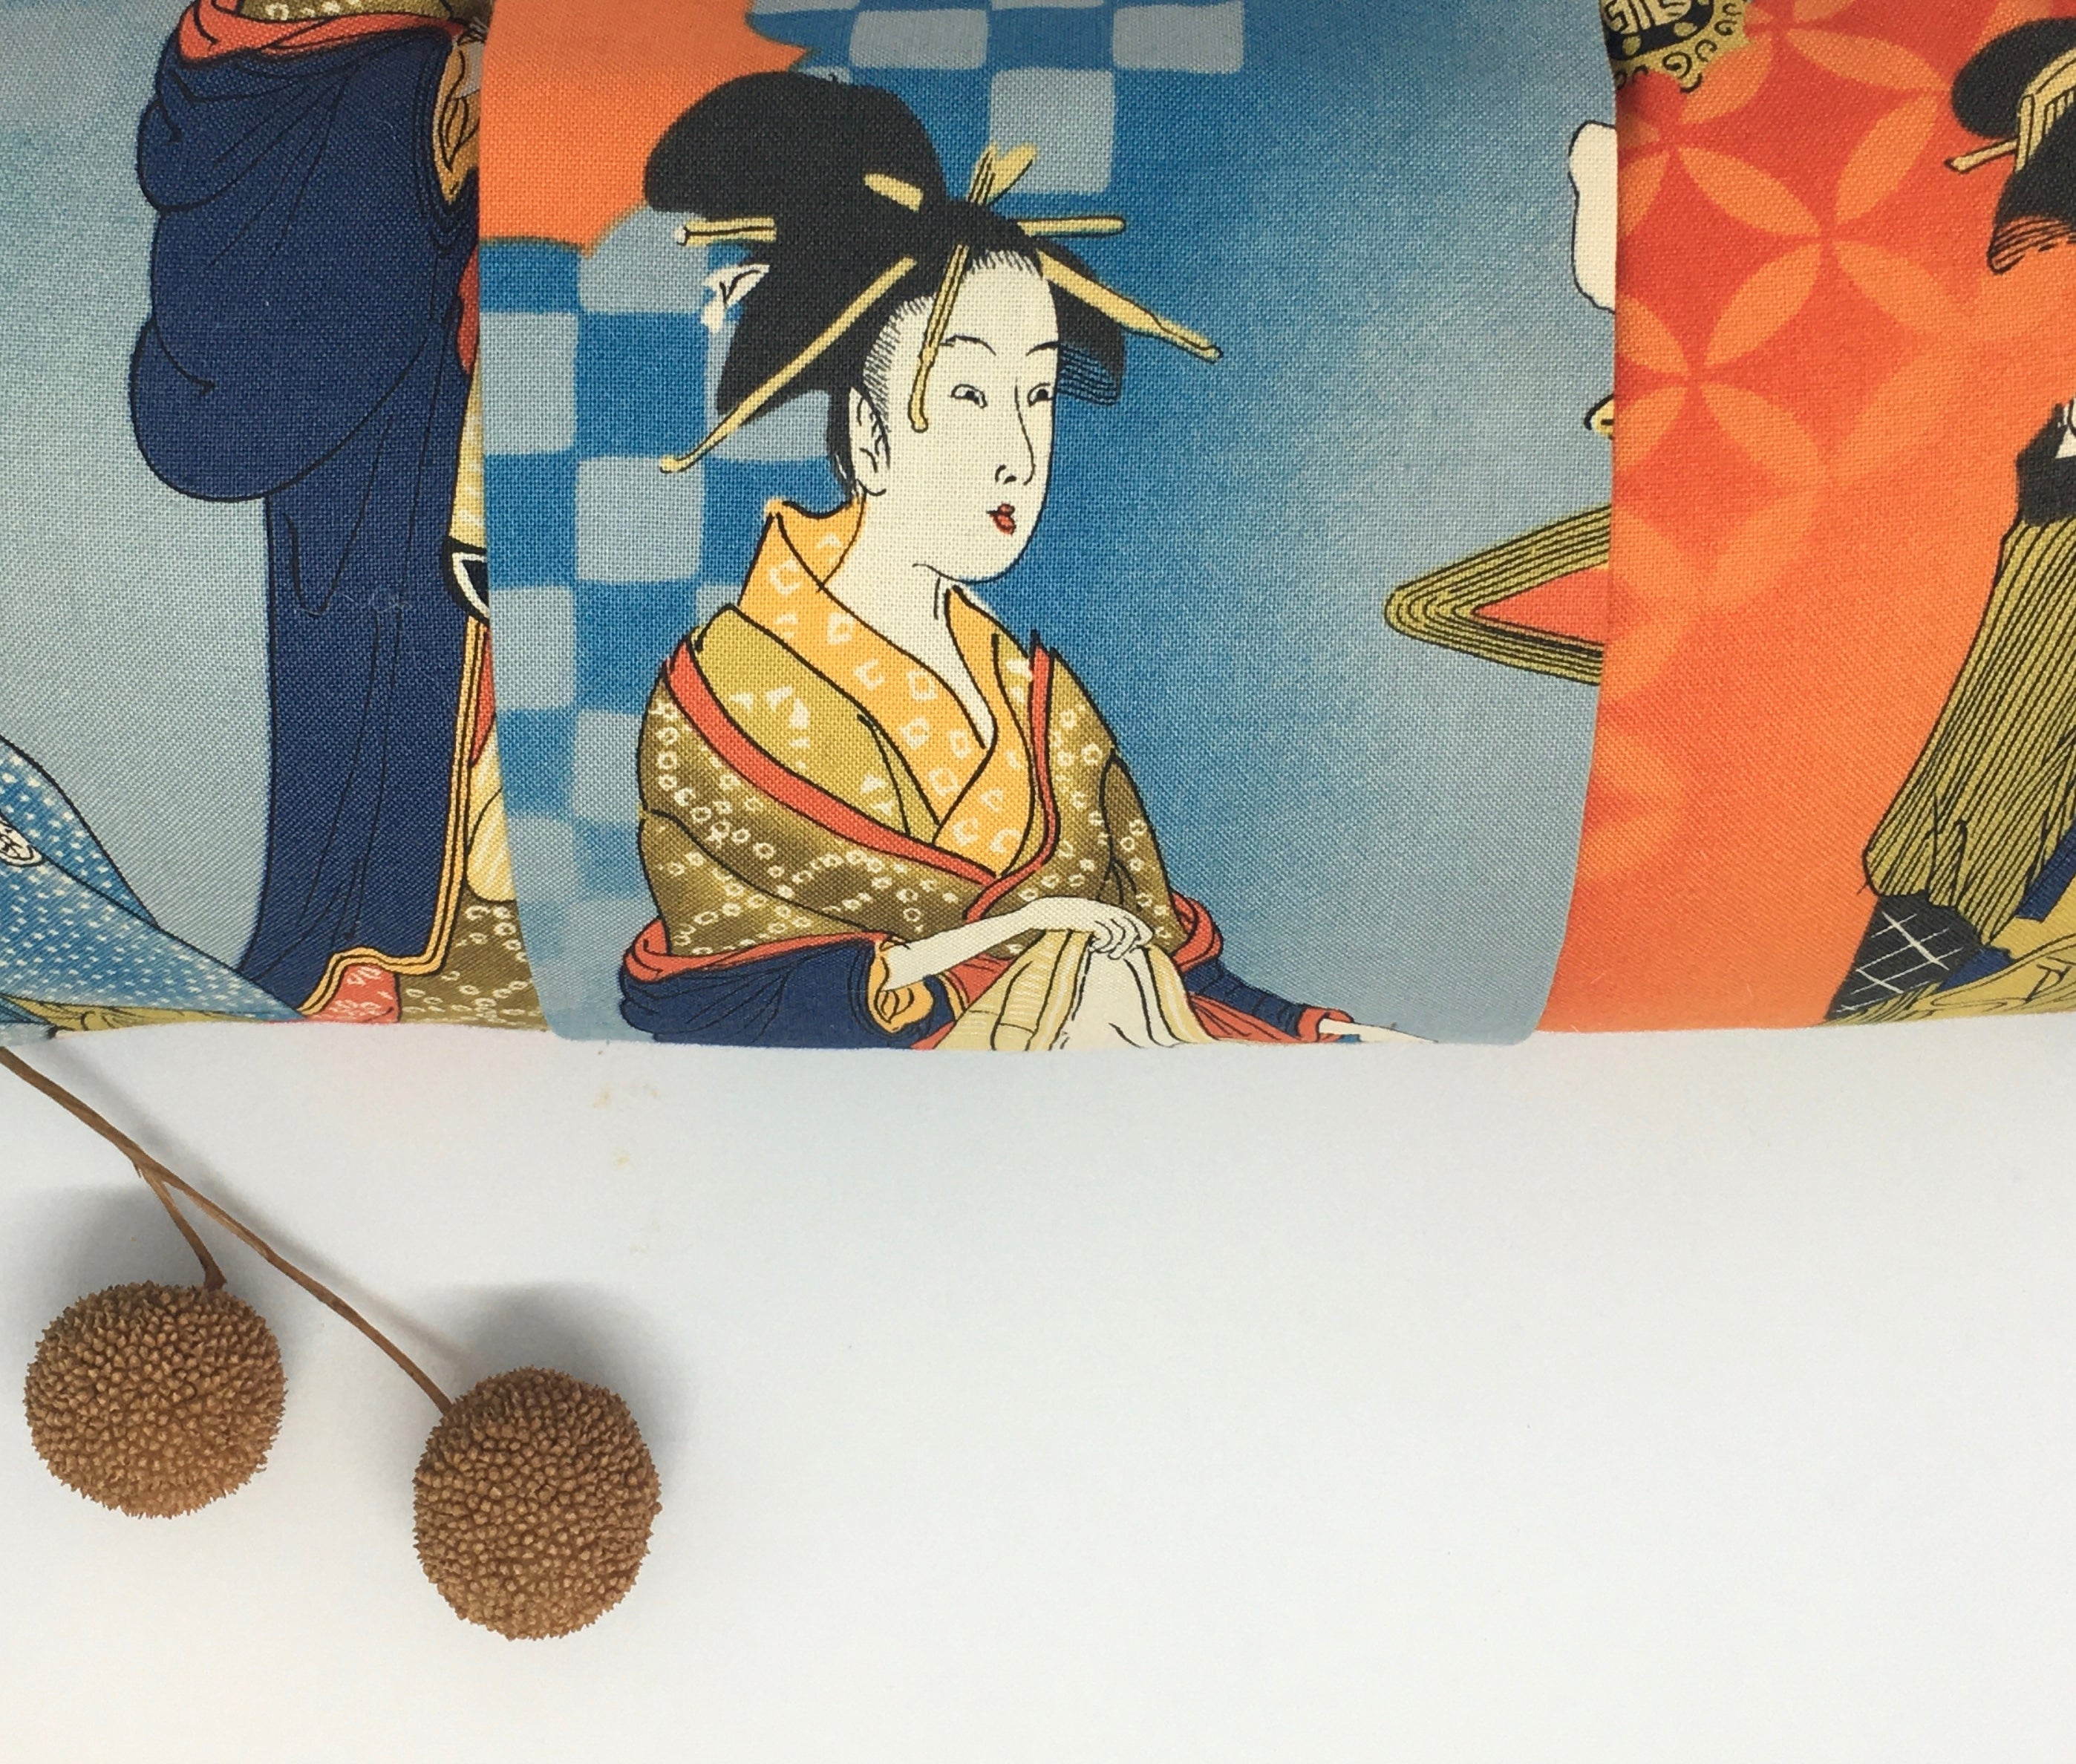 Japanese Geisha -  Pillow Pocket for your Intentions